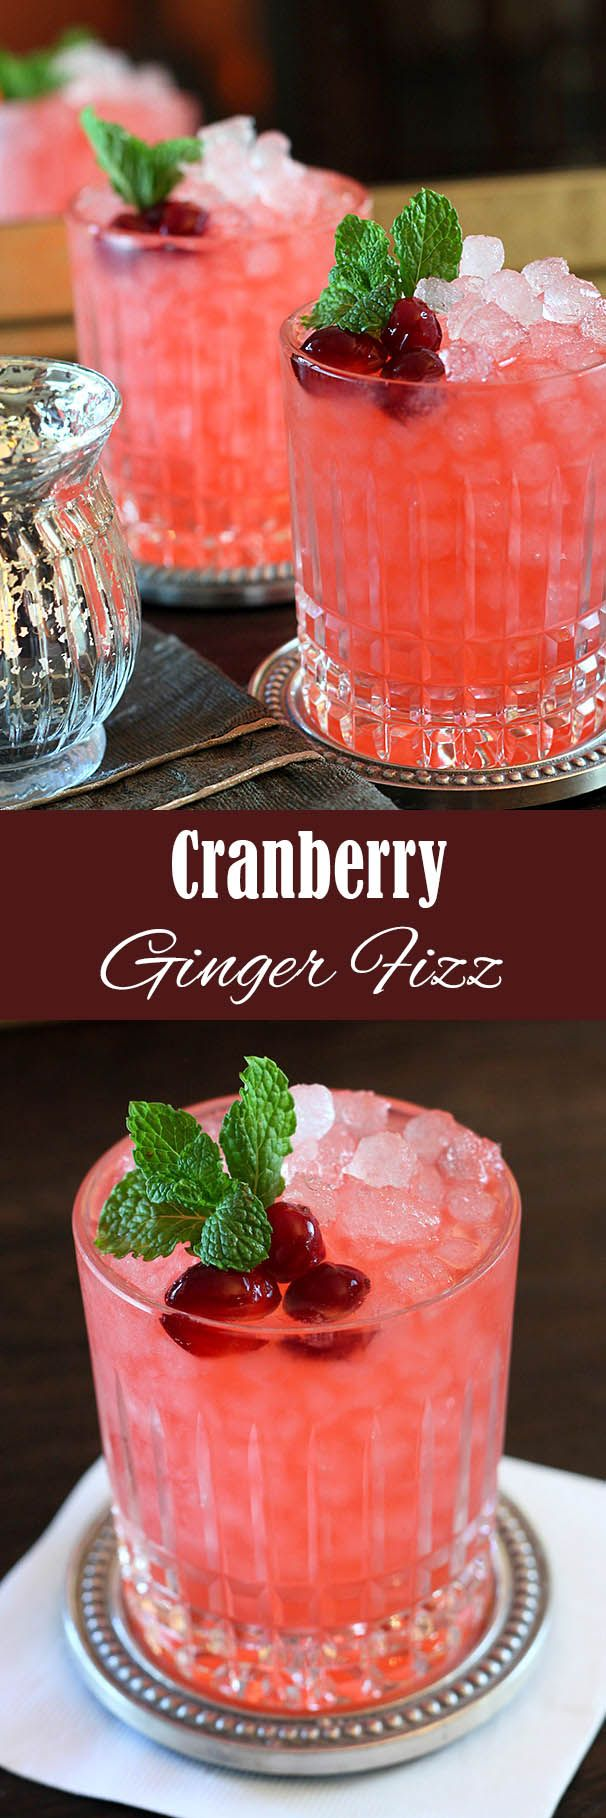 Cranberry Ginger Fizz Cocktail | Creative Culinary | A Denver, Colorado Food and Cocktail Blog featuring fresh, homemade, seasonal recipes for food and cocktails.